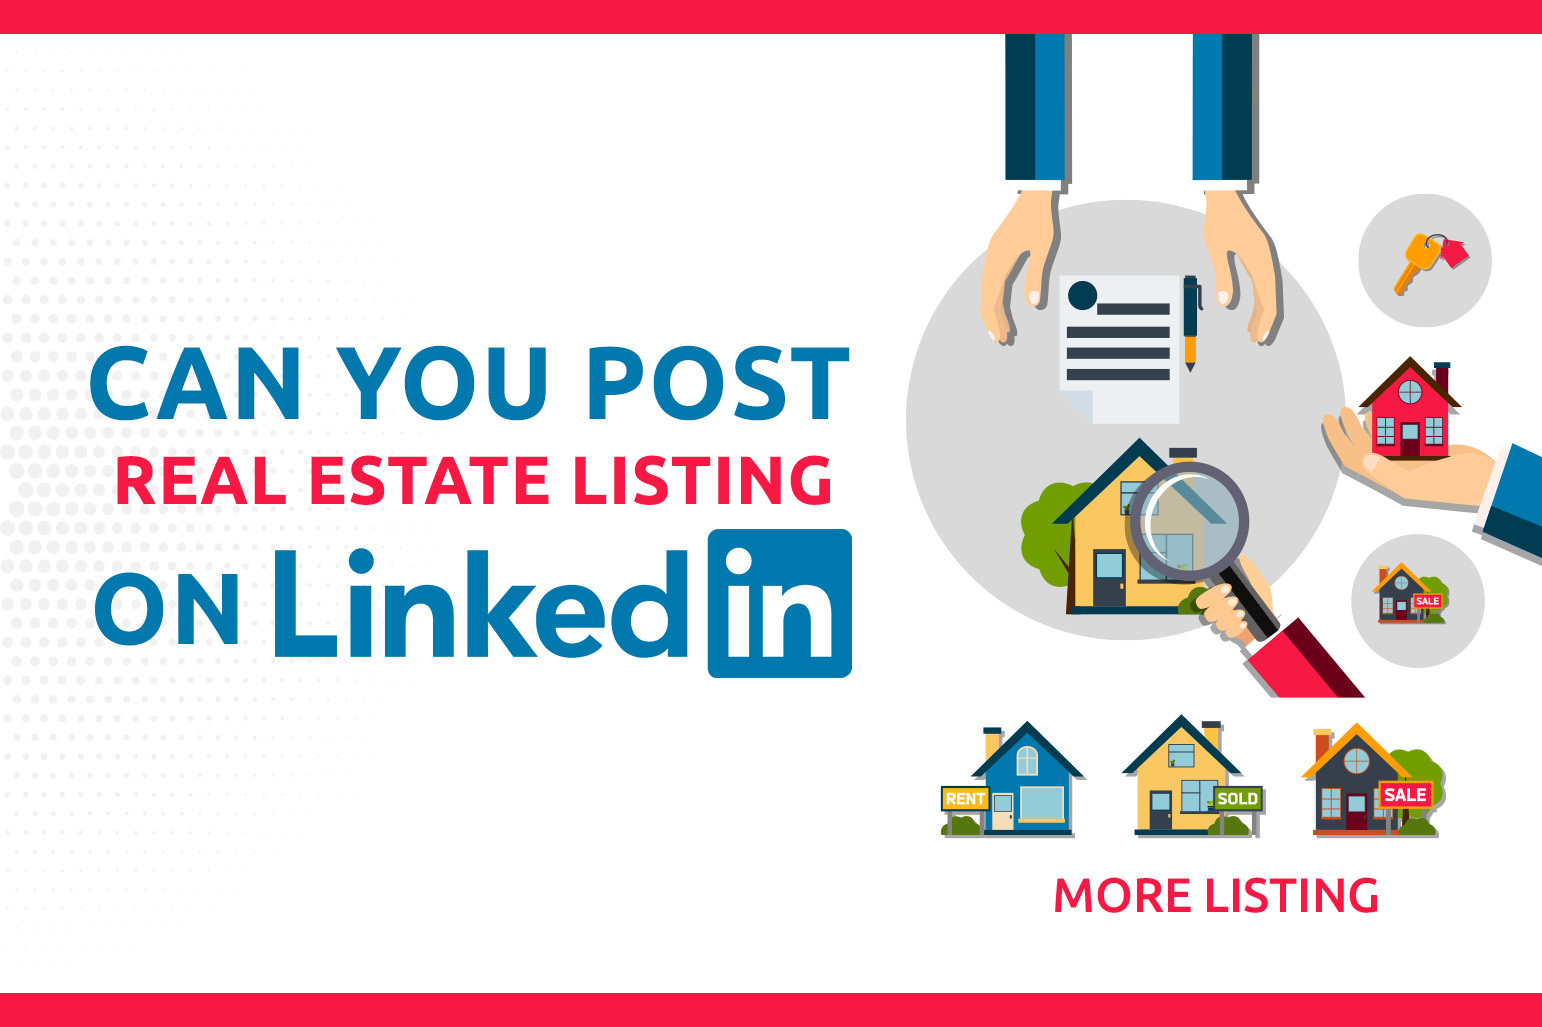 Can You Post Real Estate Listings On LinkedIn?